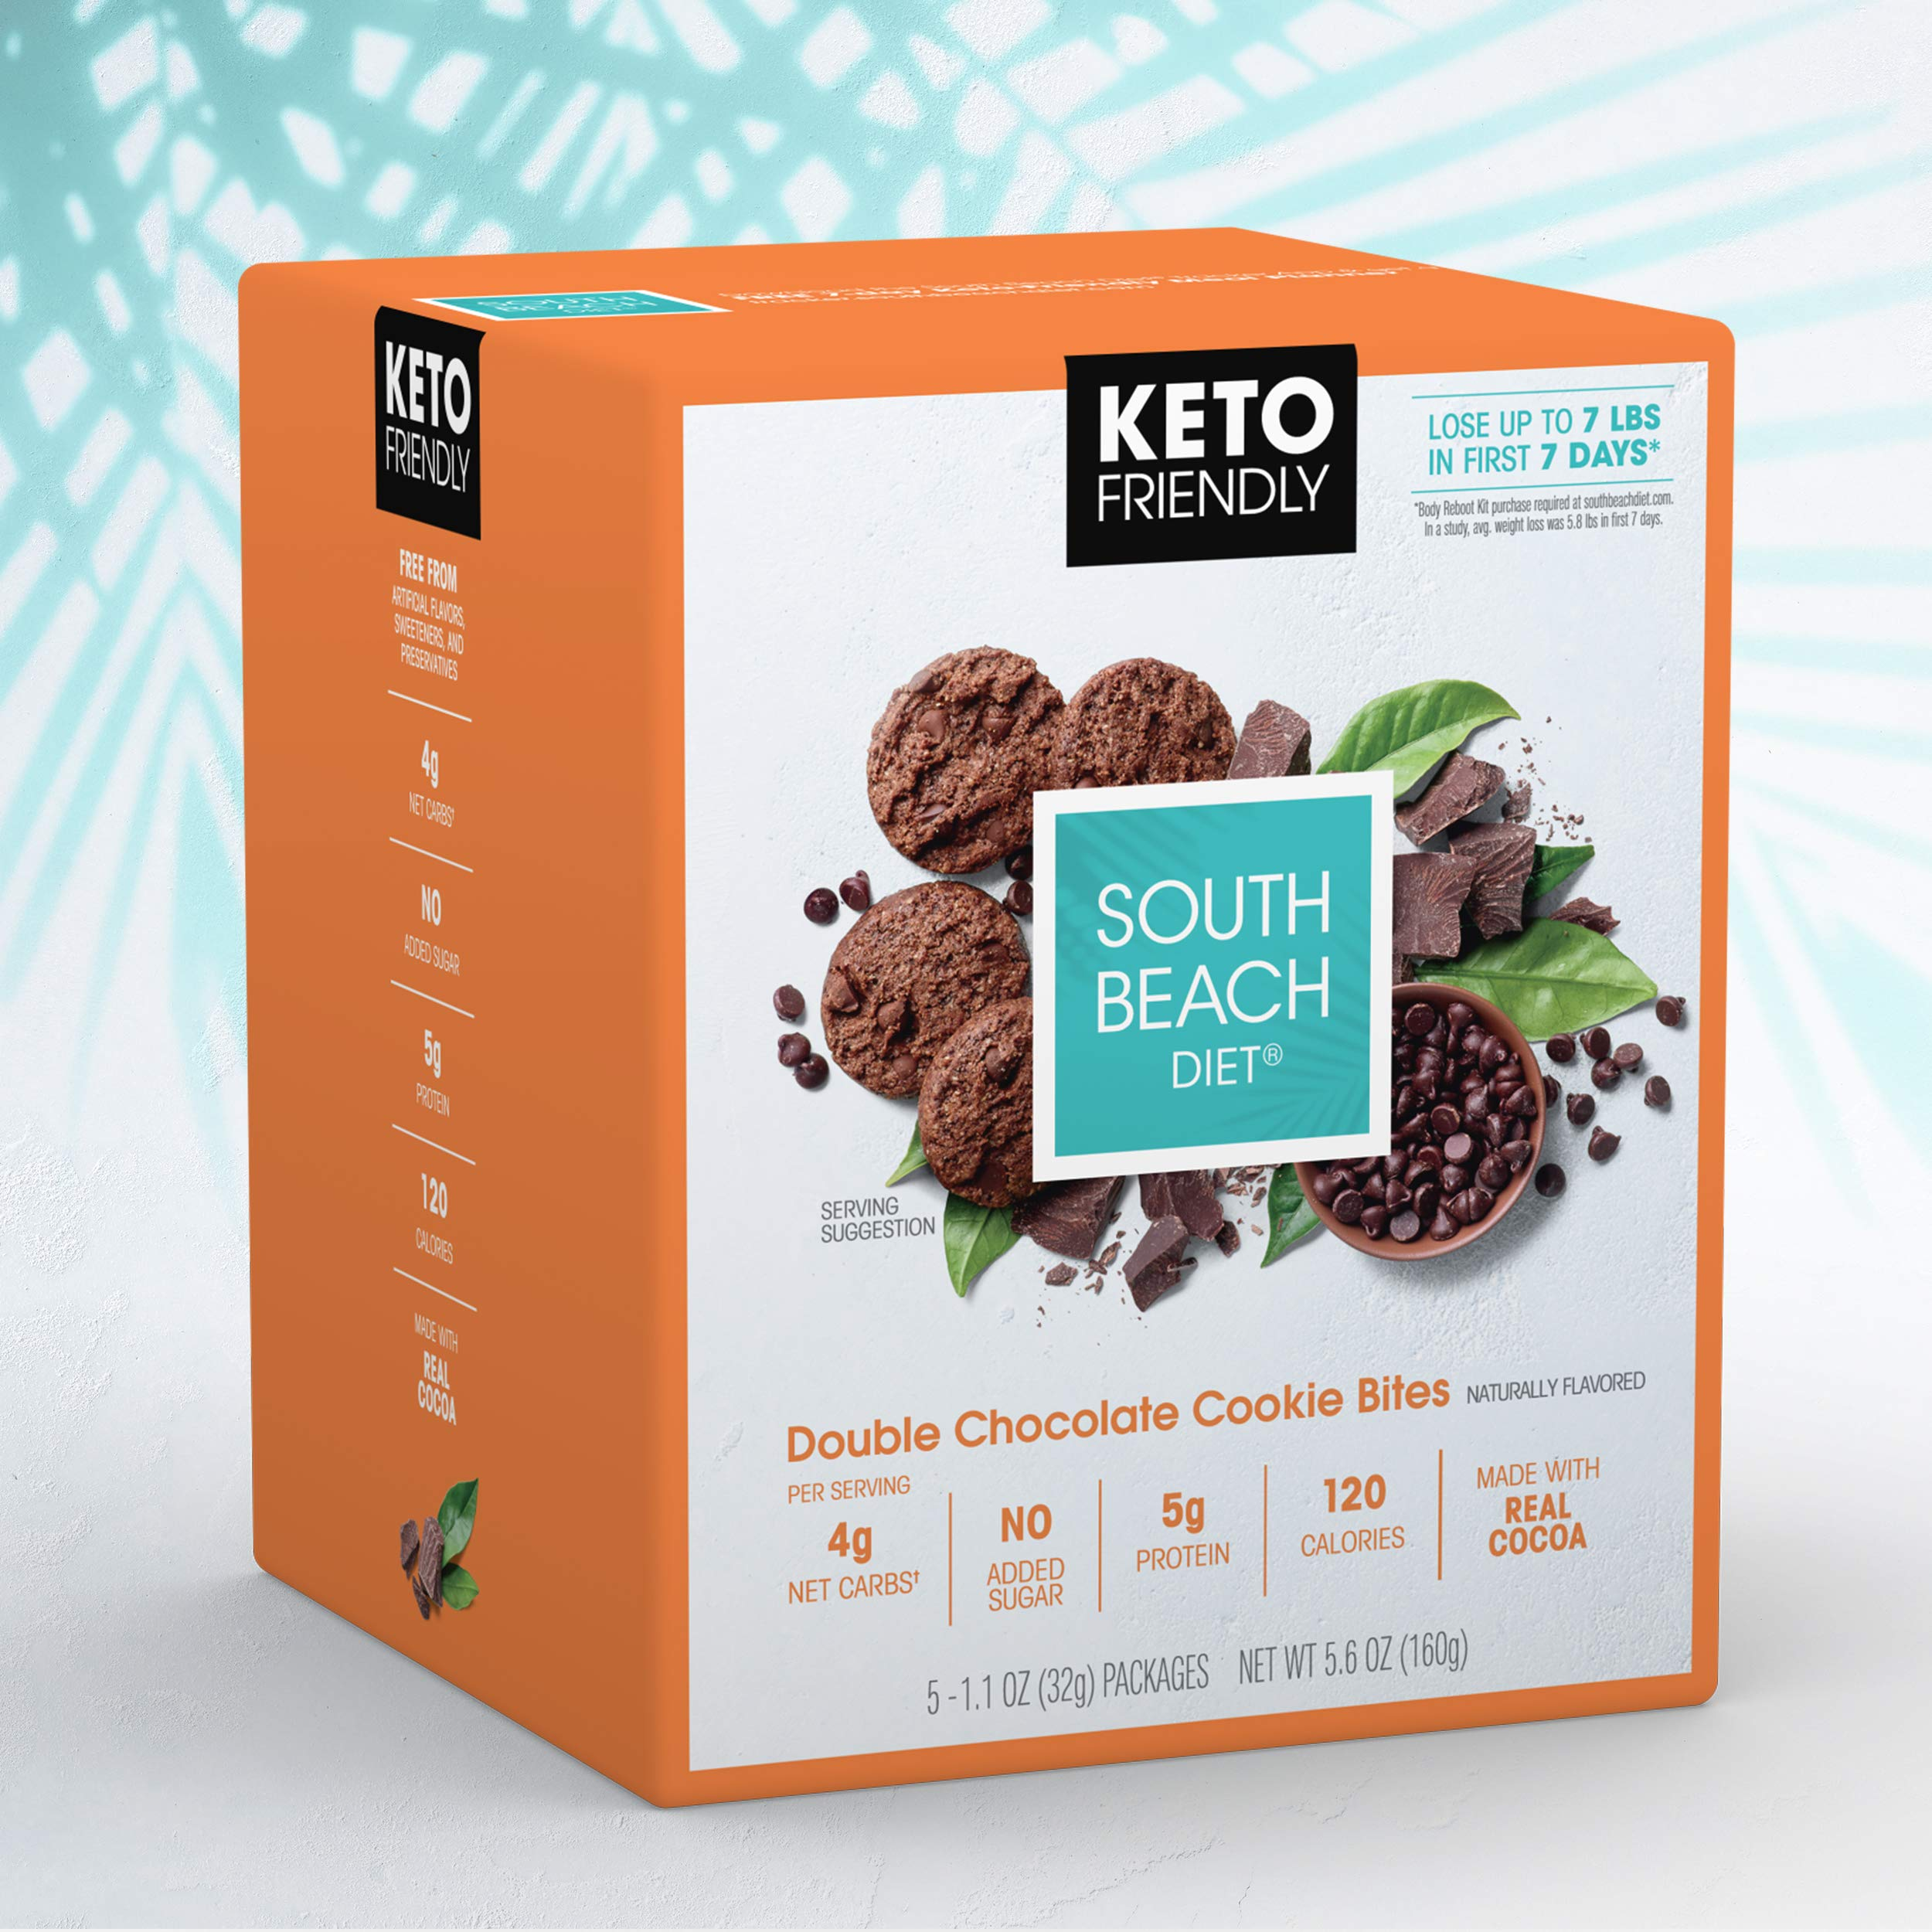 South Beach Diet® Double Chocolate Cookie Bites (20 ct) - Delicious Snacks Made to Support Healthy Weight Loss & Your Keto Lifestyle by South Beach Diet